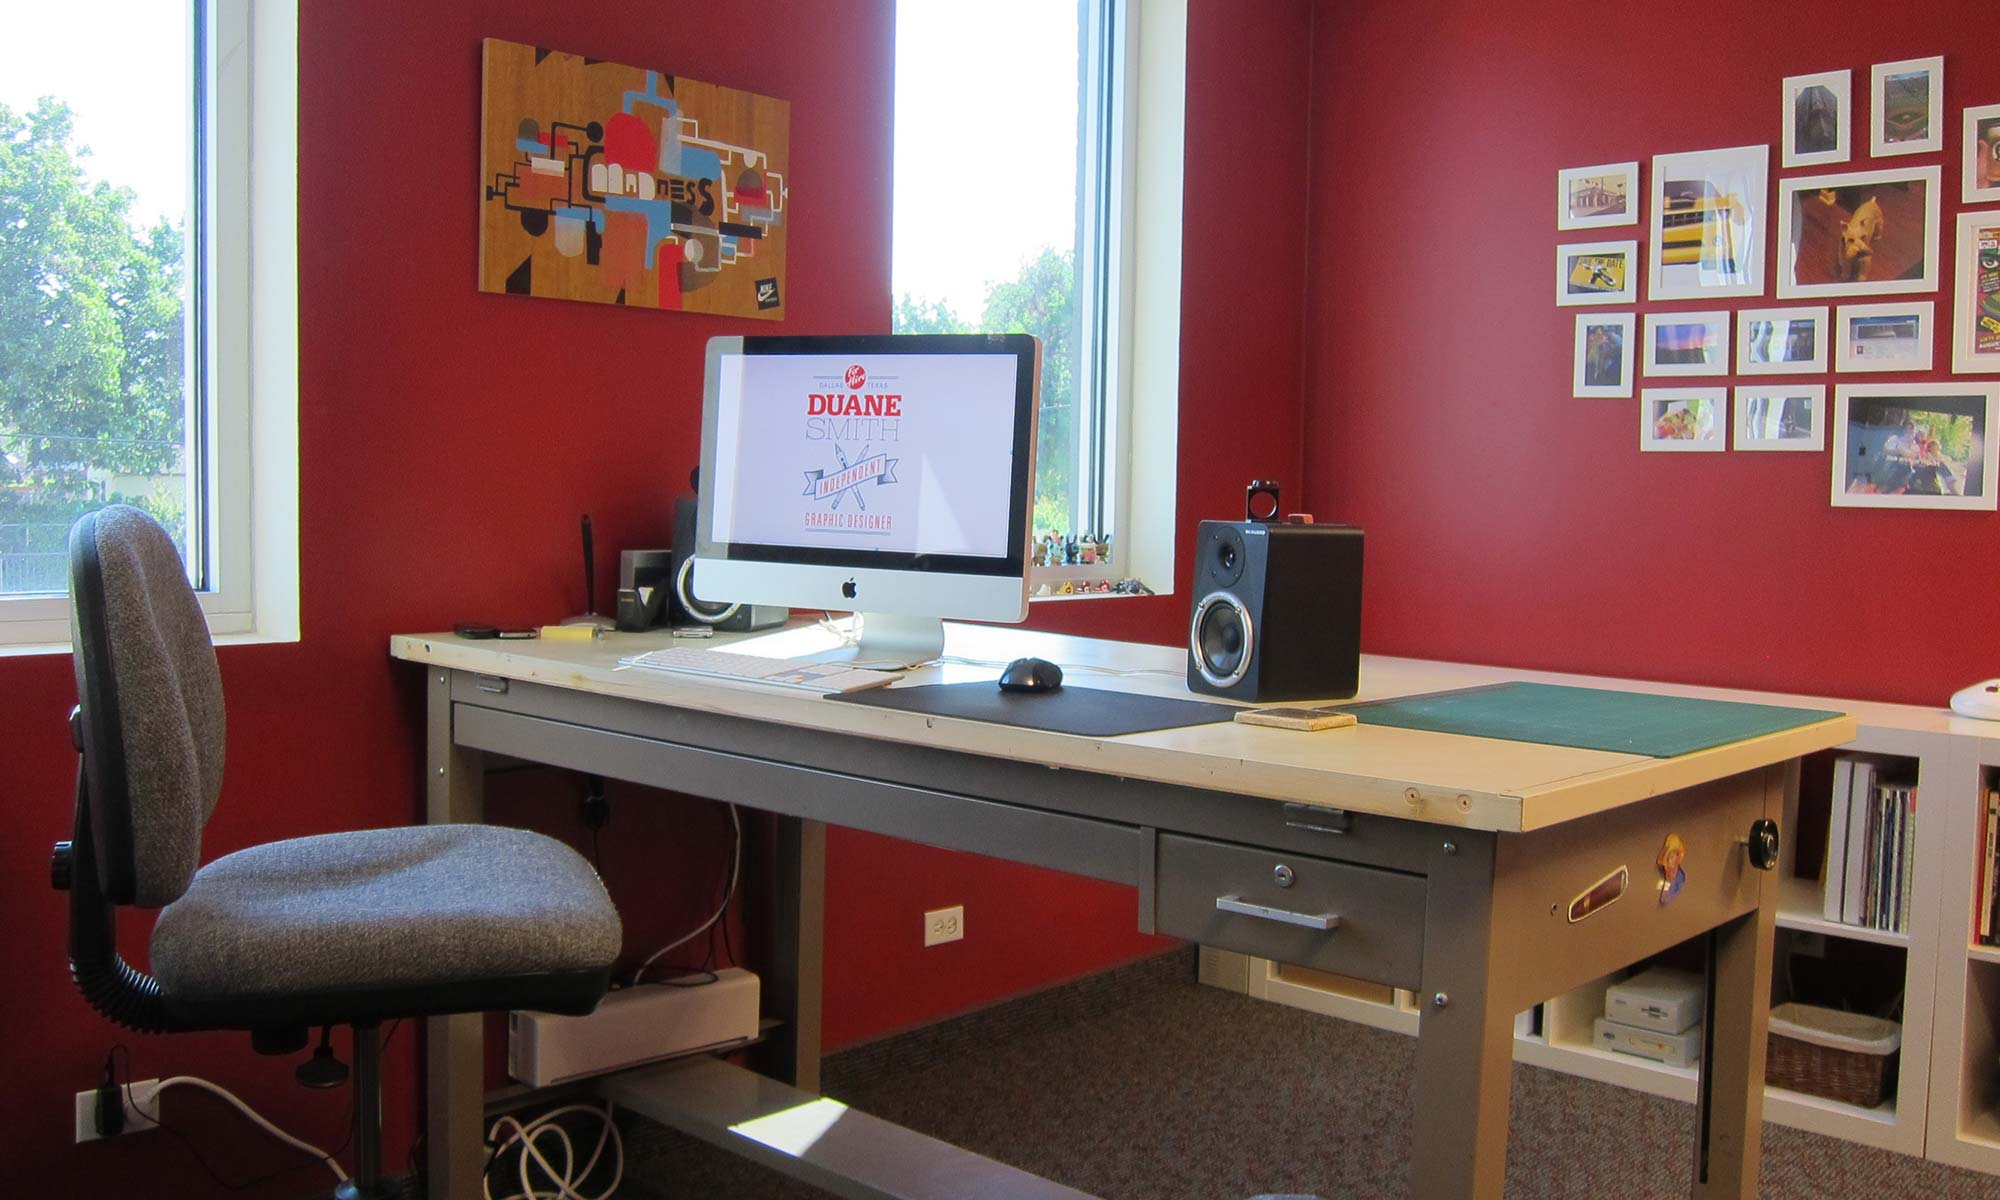 Design Business: My first studio space, a tiny 390 sqft office in Dallas, TX (2011)